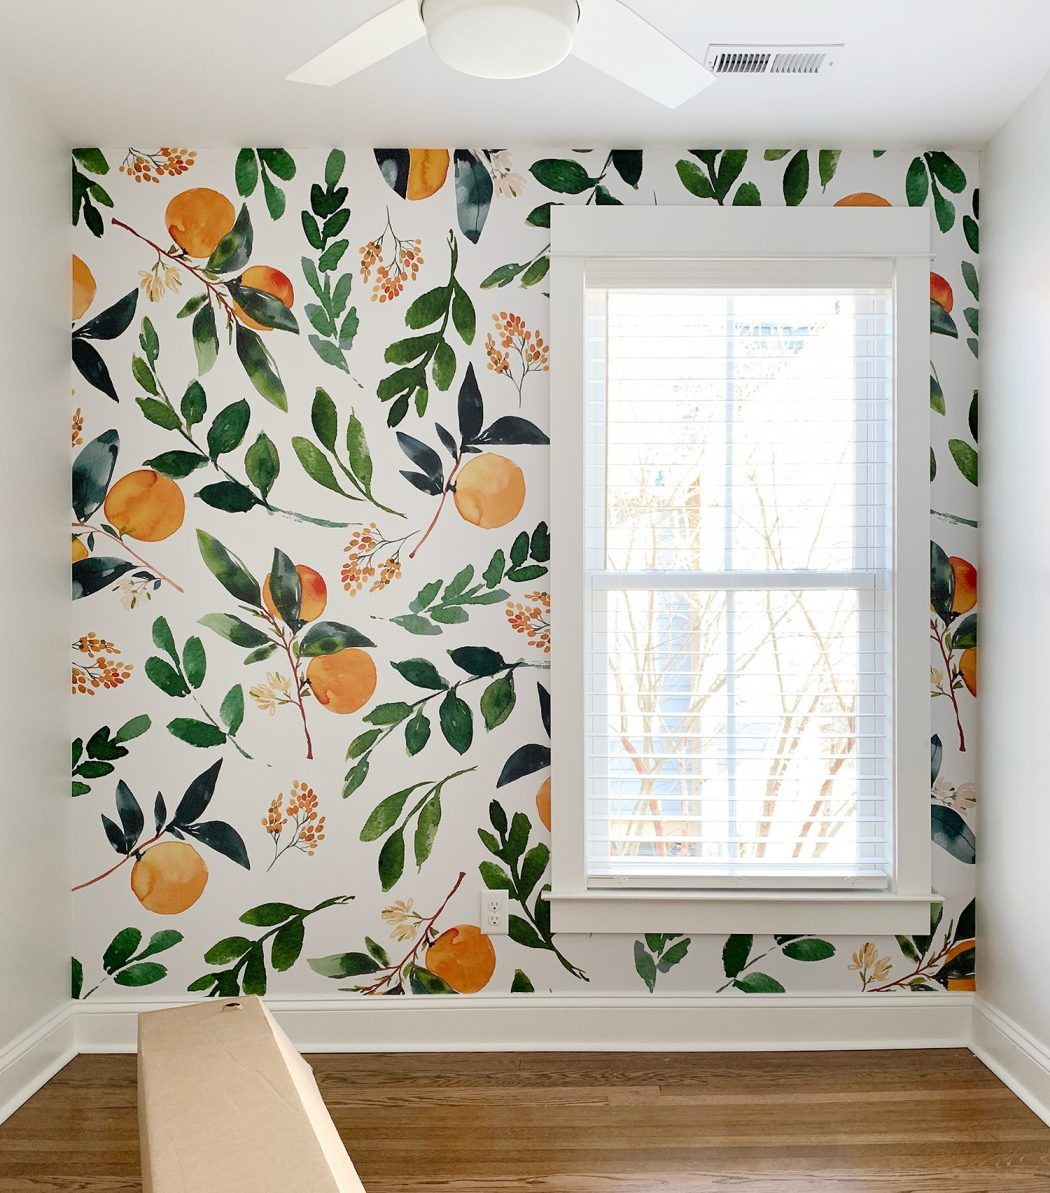 How To Install A Removable Wallpaper Mural images